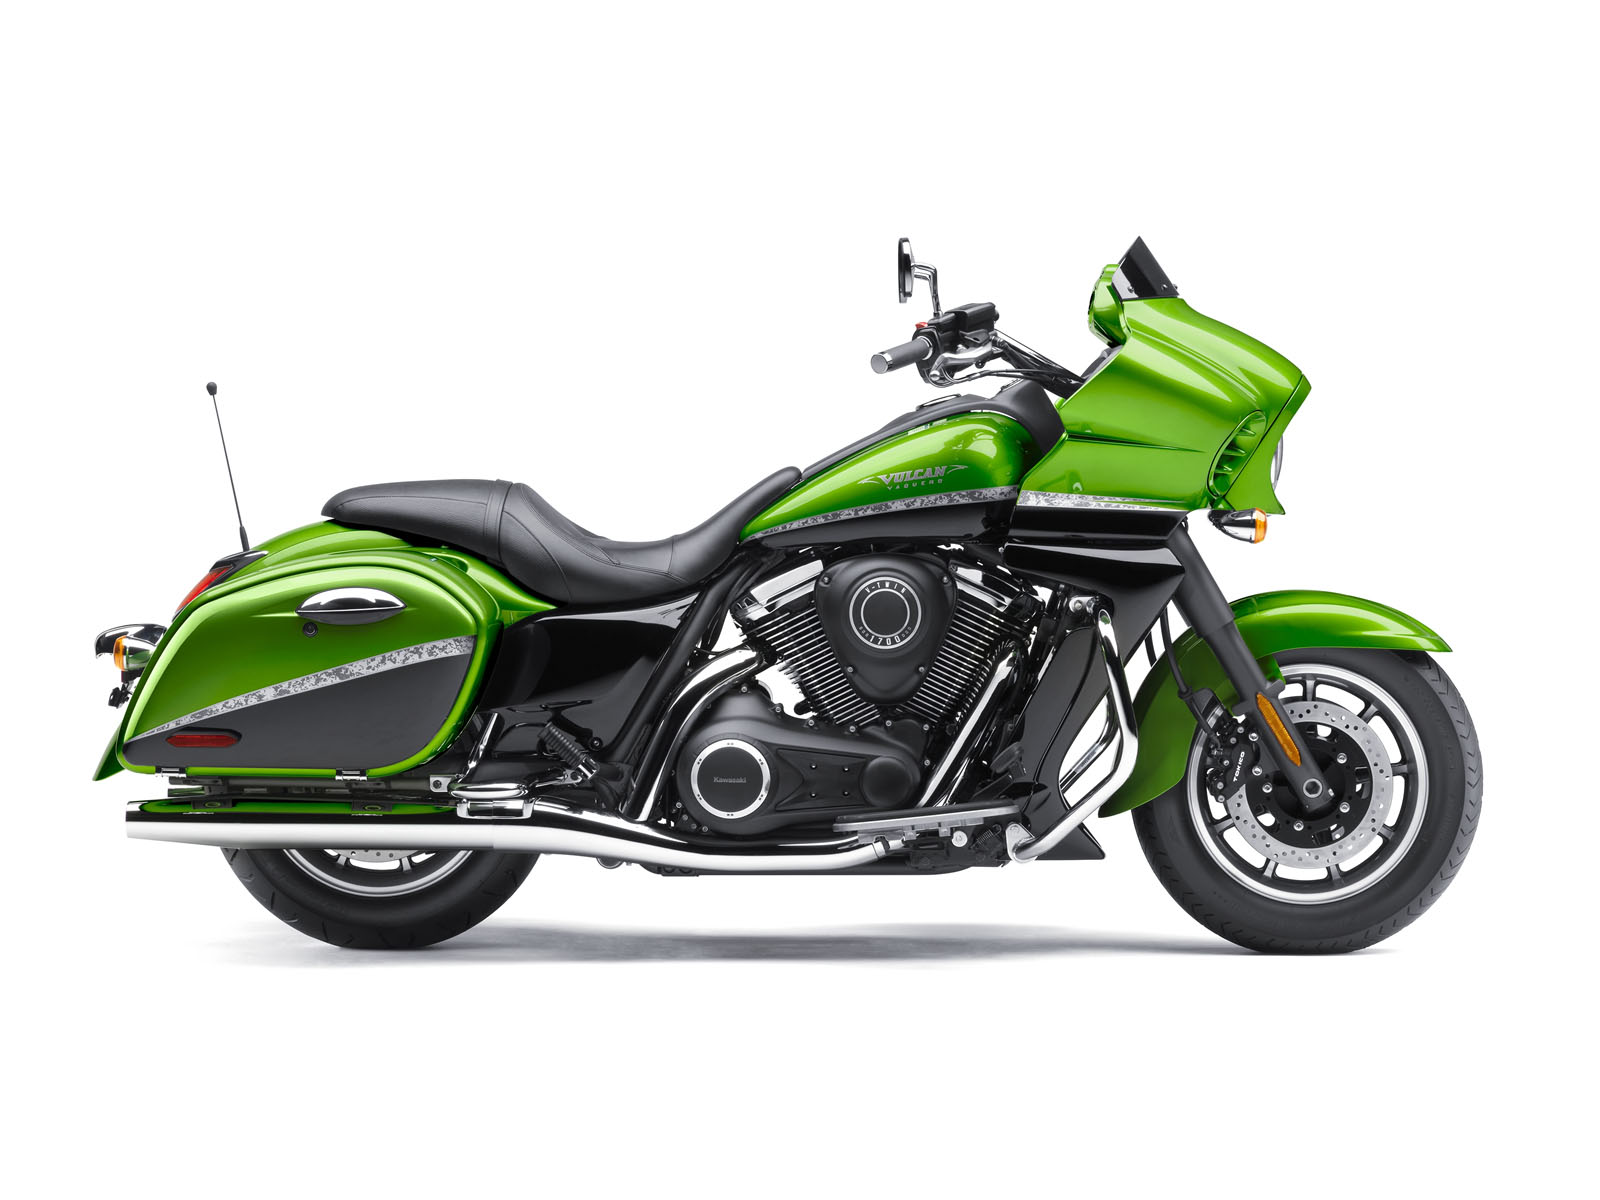 2011 Kawasaki Vulcan 1700 Vaquero Review   Specs  Pictures   One